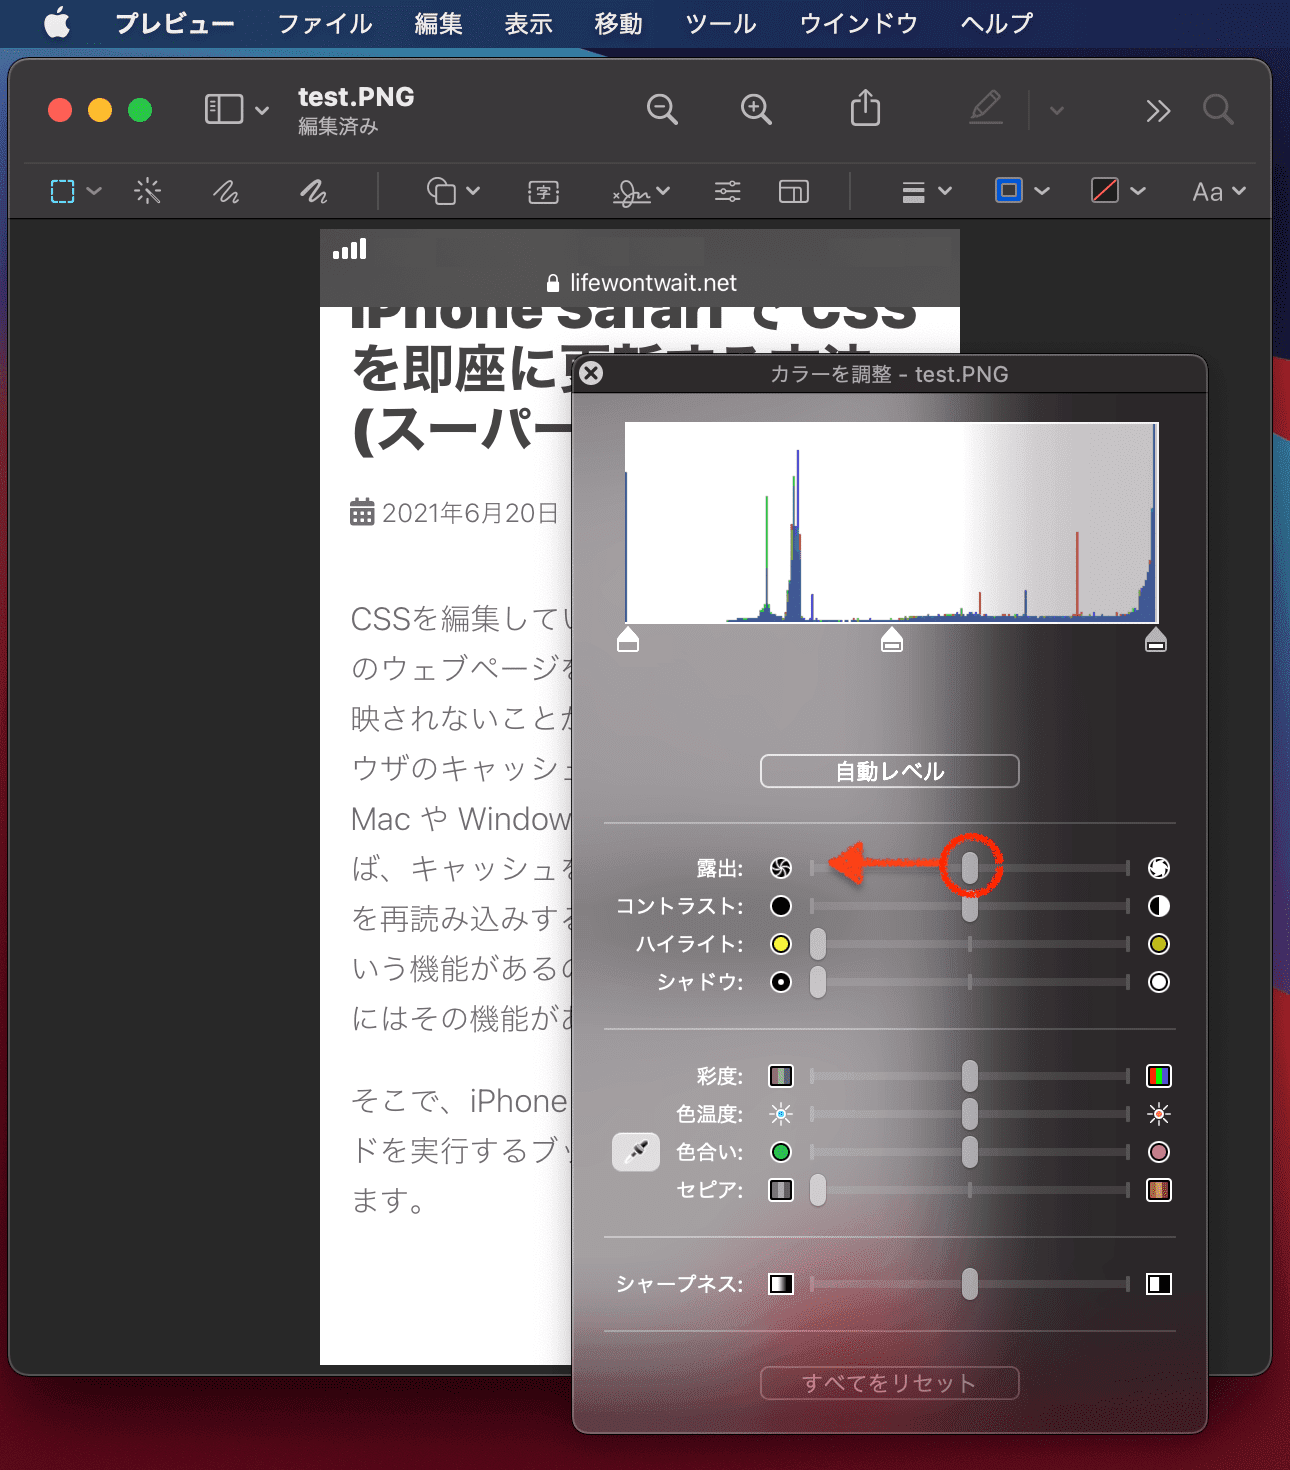 highlight-part-of-an-image-in-the-mac-preview-app_04